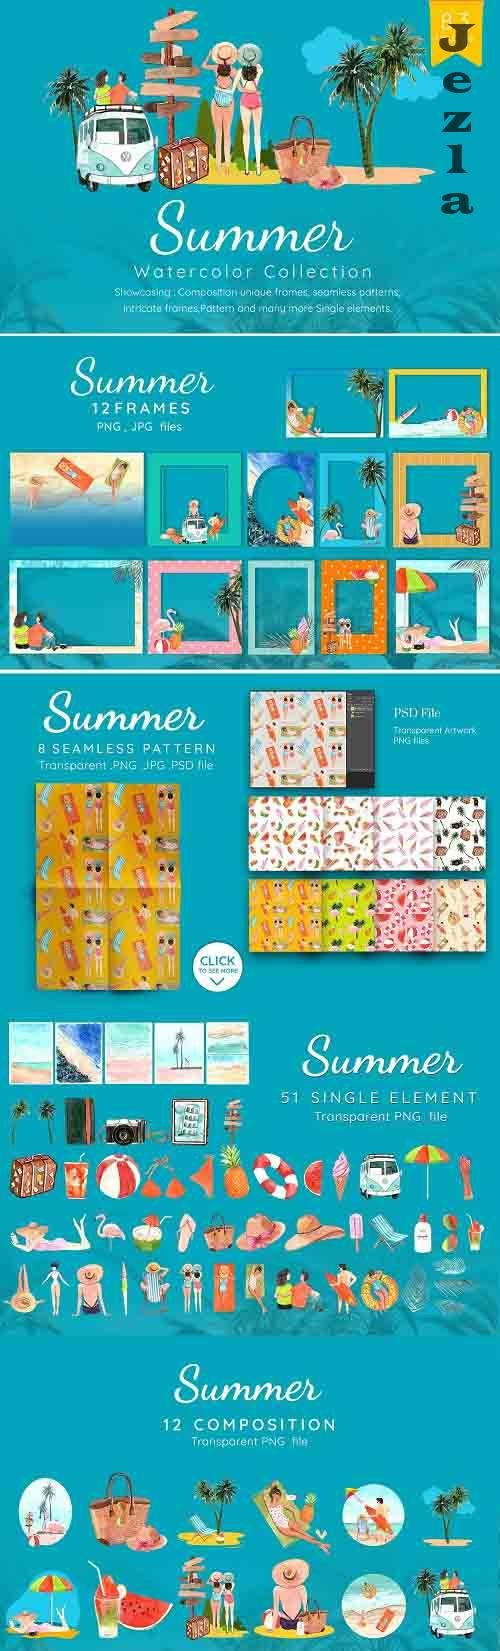 Summer on the beach Watercolor - 6154826